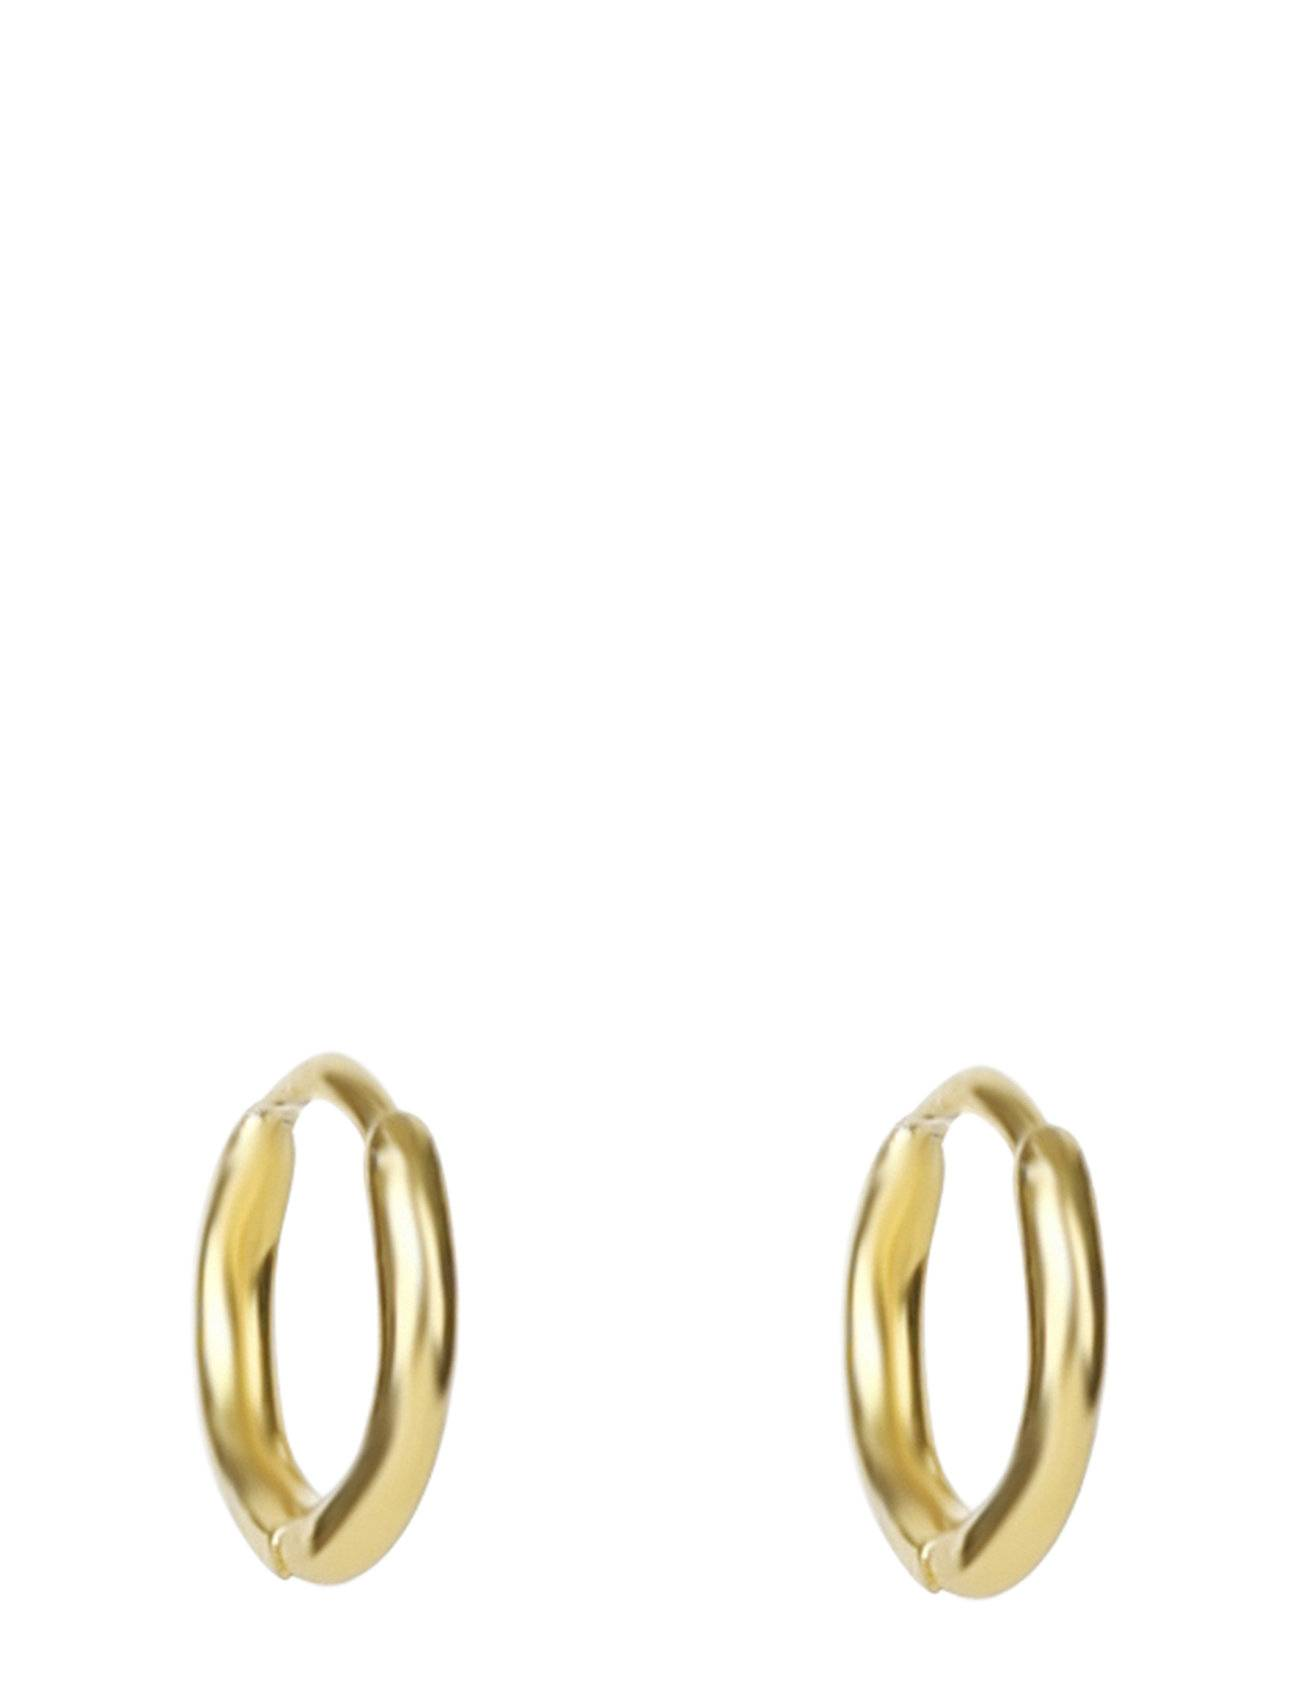 Syster P Mini Hoop Earrings Gold Accessories Jewellery Earrings Hoops Kulta Syster P